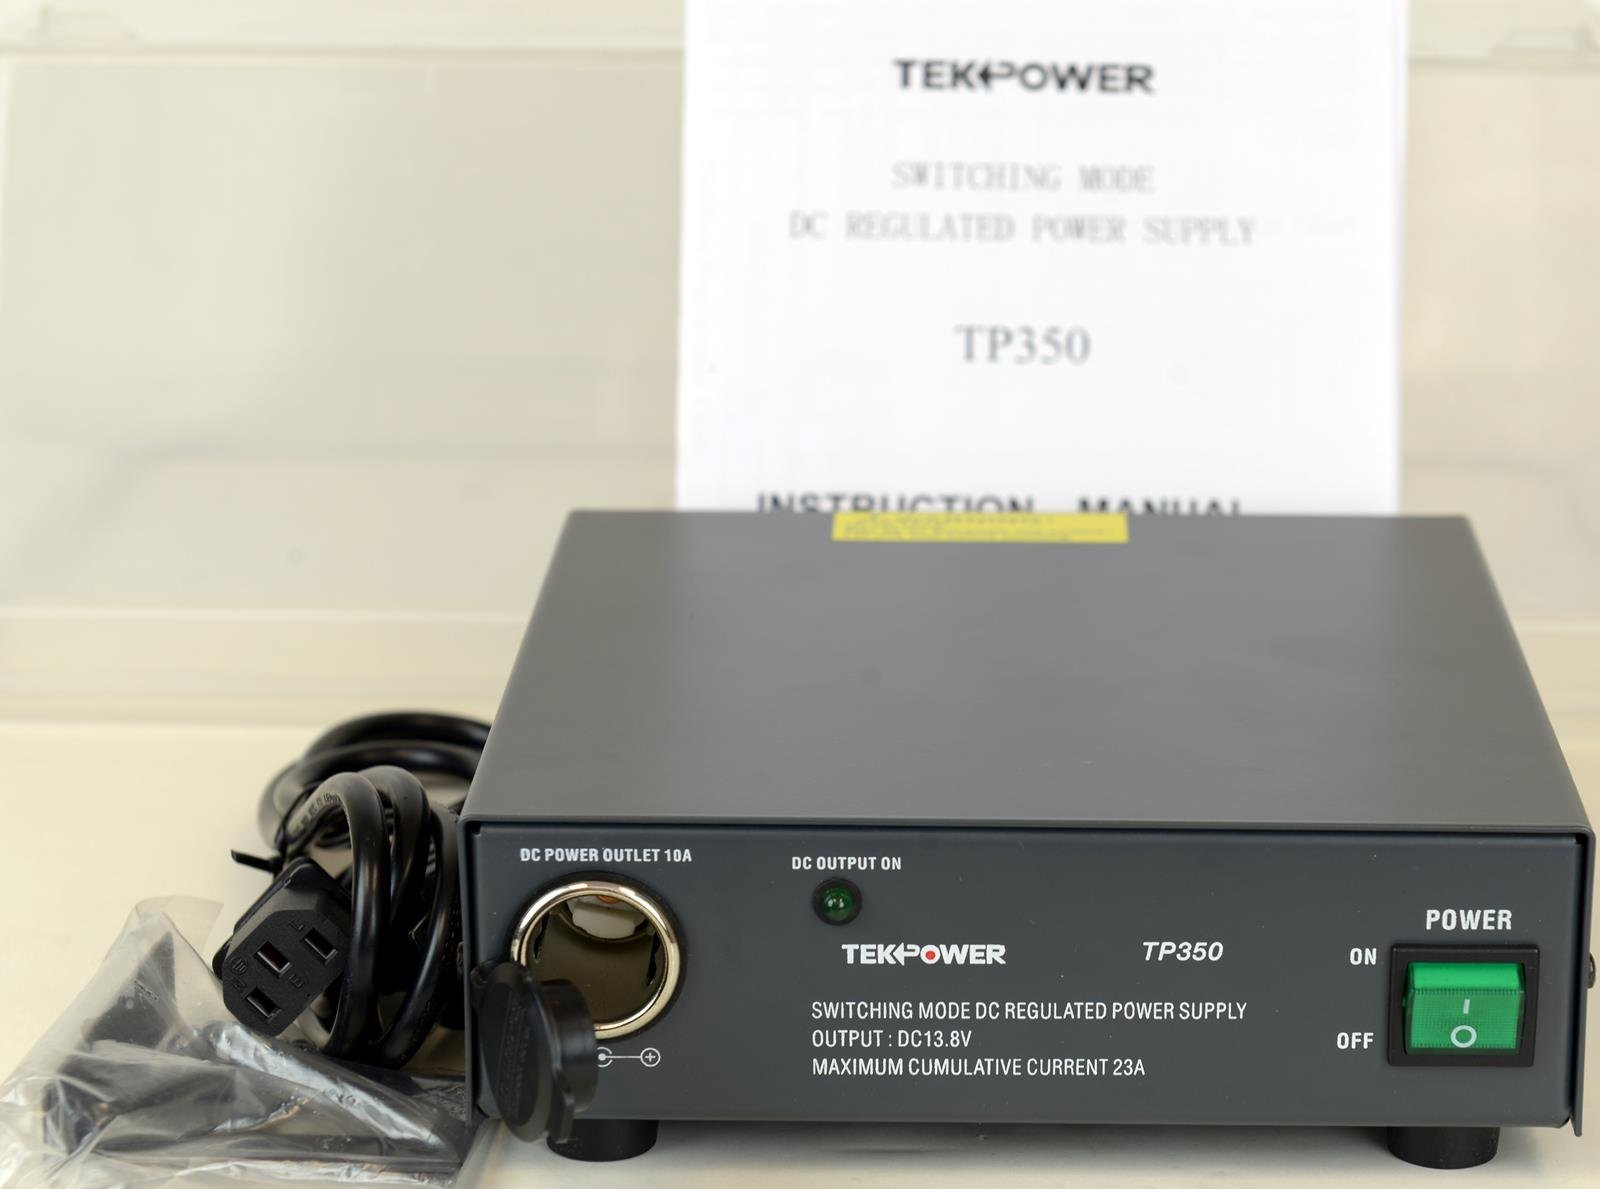 TekPower TP350 23 Amp DC 13.8V Switching Power Supply with Cigarette Plug by Tekpower (Image #4)